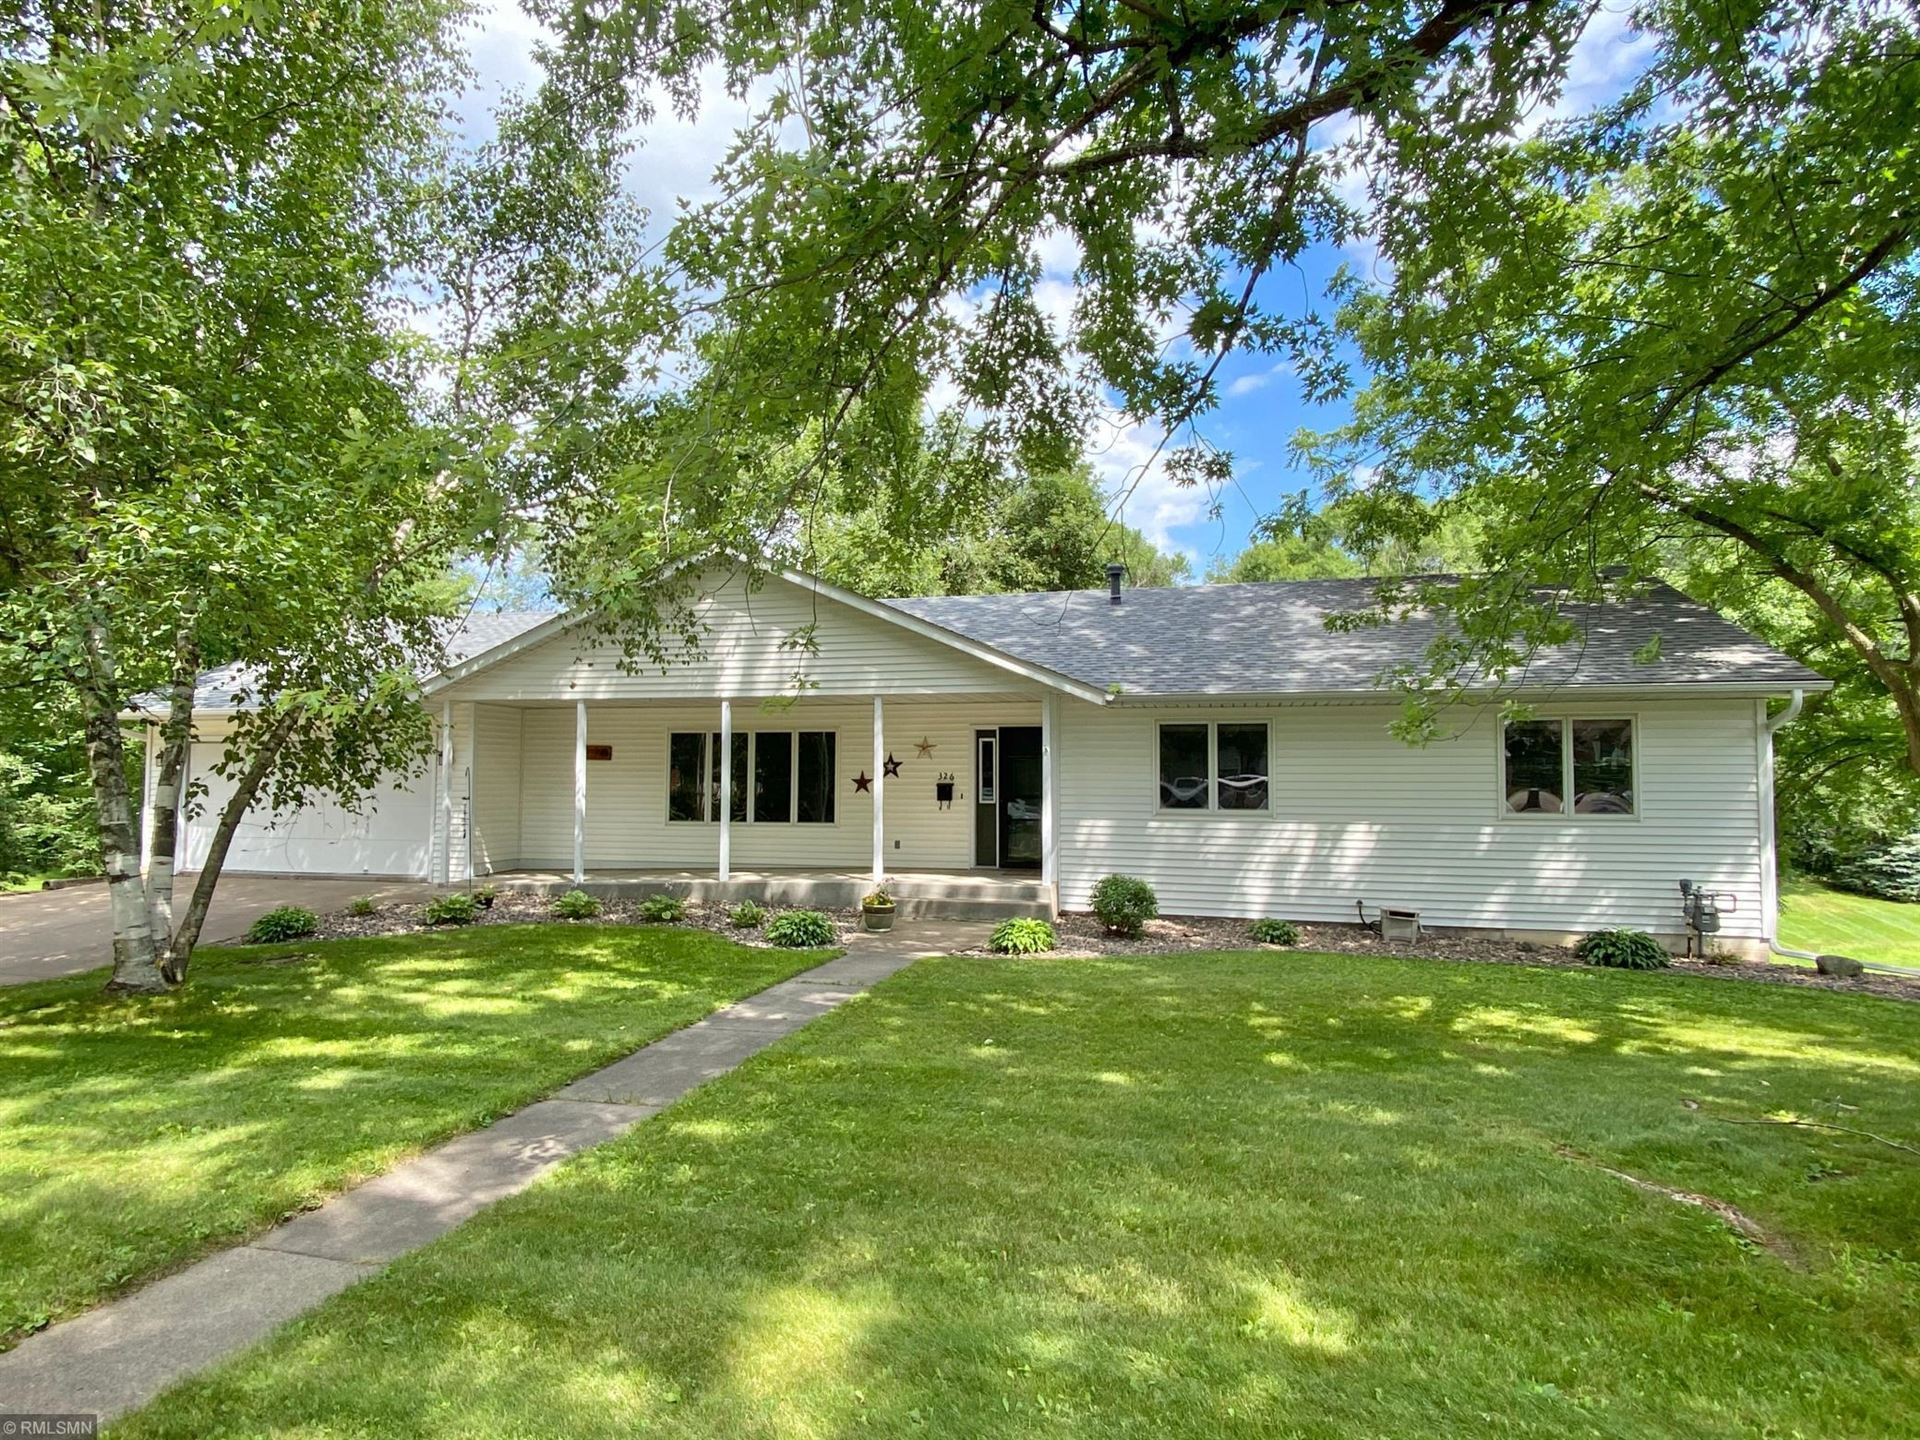 326 Rounds Avenue, New Richmond, WI 54017 - MLS#: 5631483